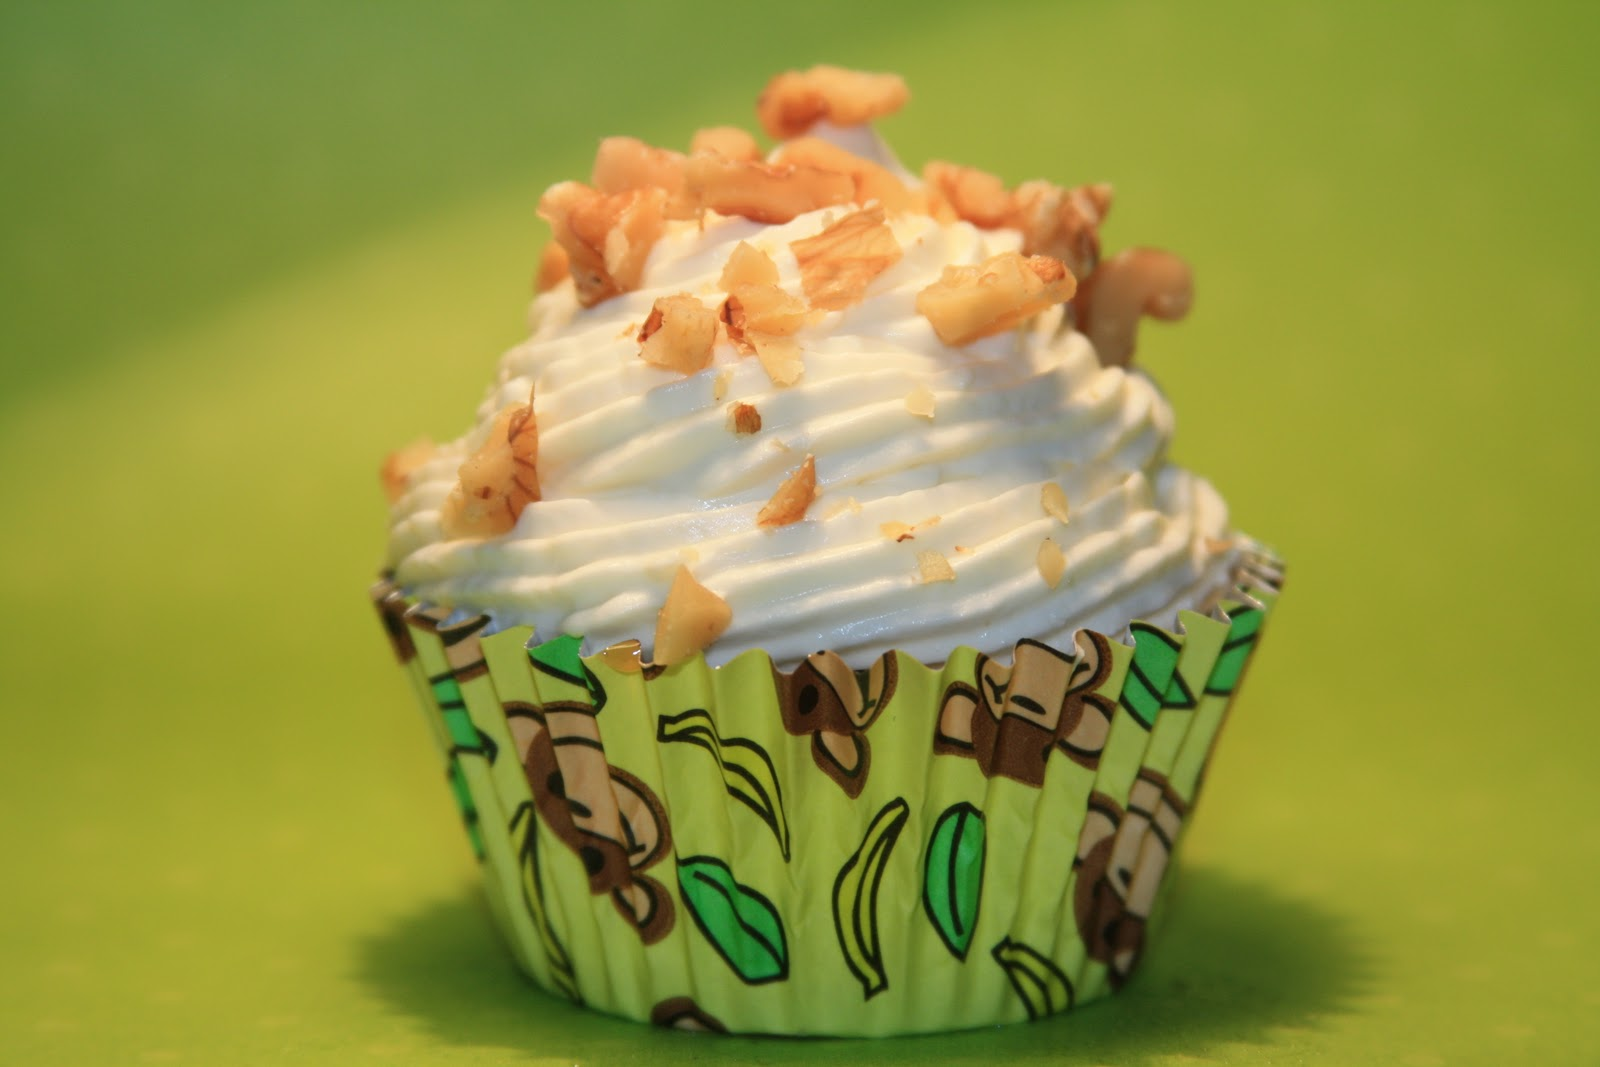 Chocolate Cupcake With Coconut Pecan Frosting